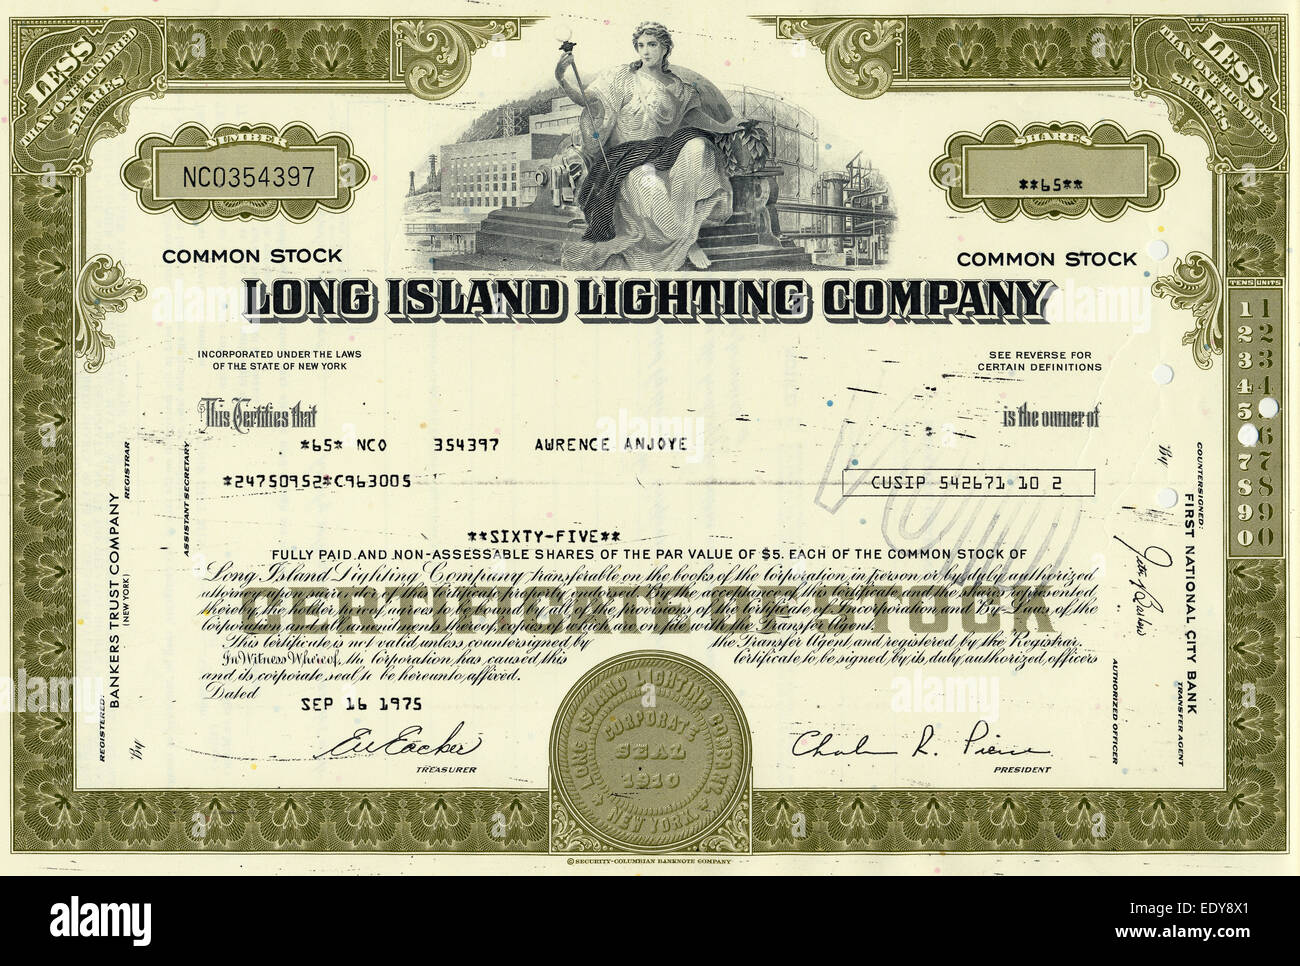 Historic share certificate electrical power and natural gas company Long Island Lighting Company 1975 New York USA  sc 1 st  Alamy & Historic share certificate electrical power and natural gas ... azcodes.com